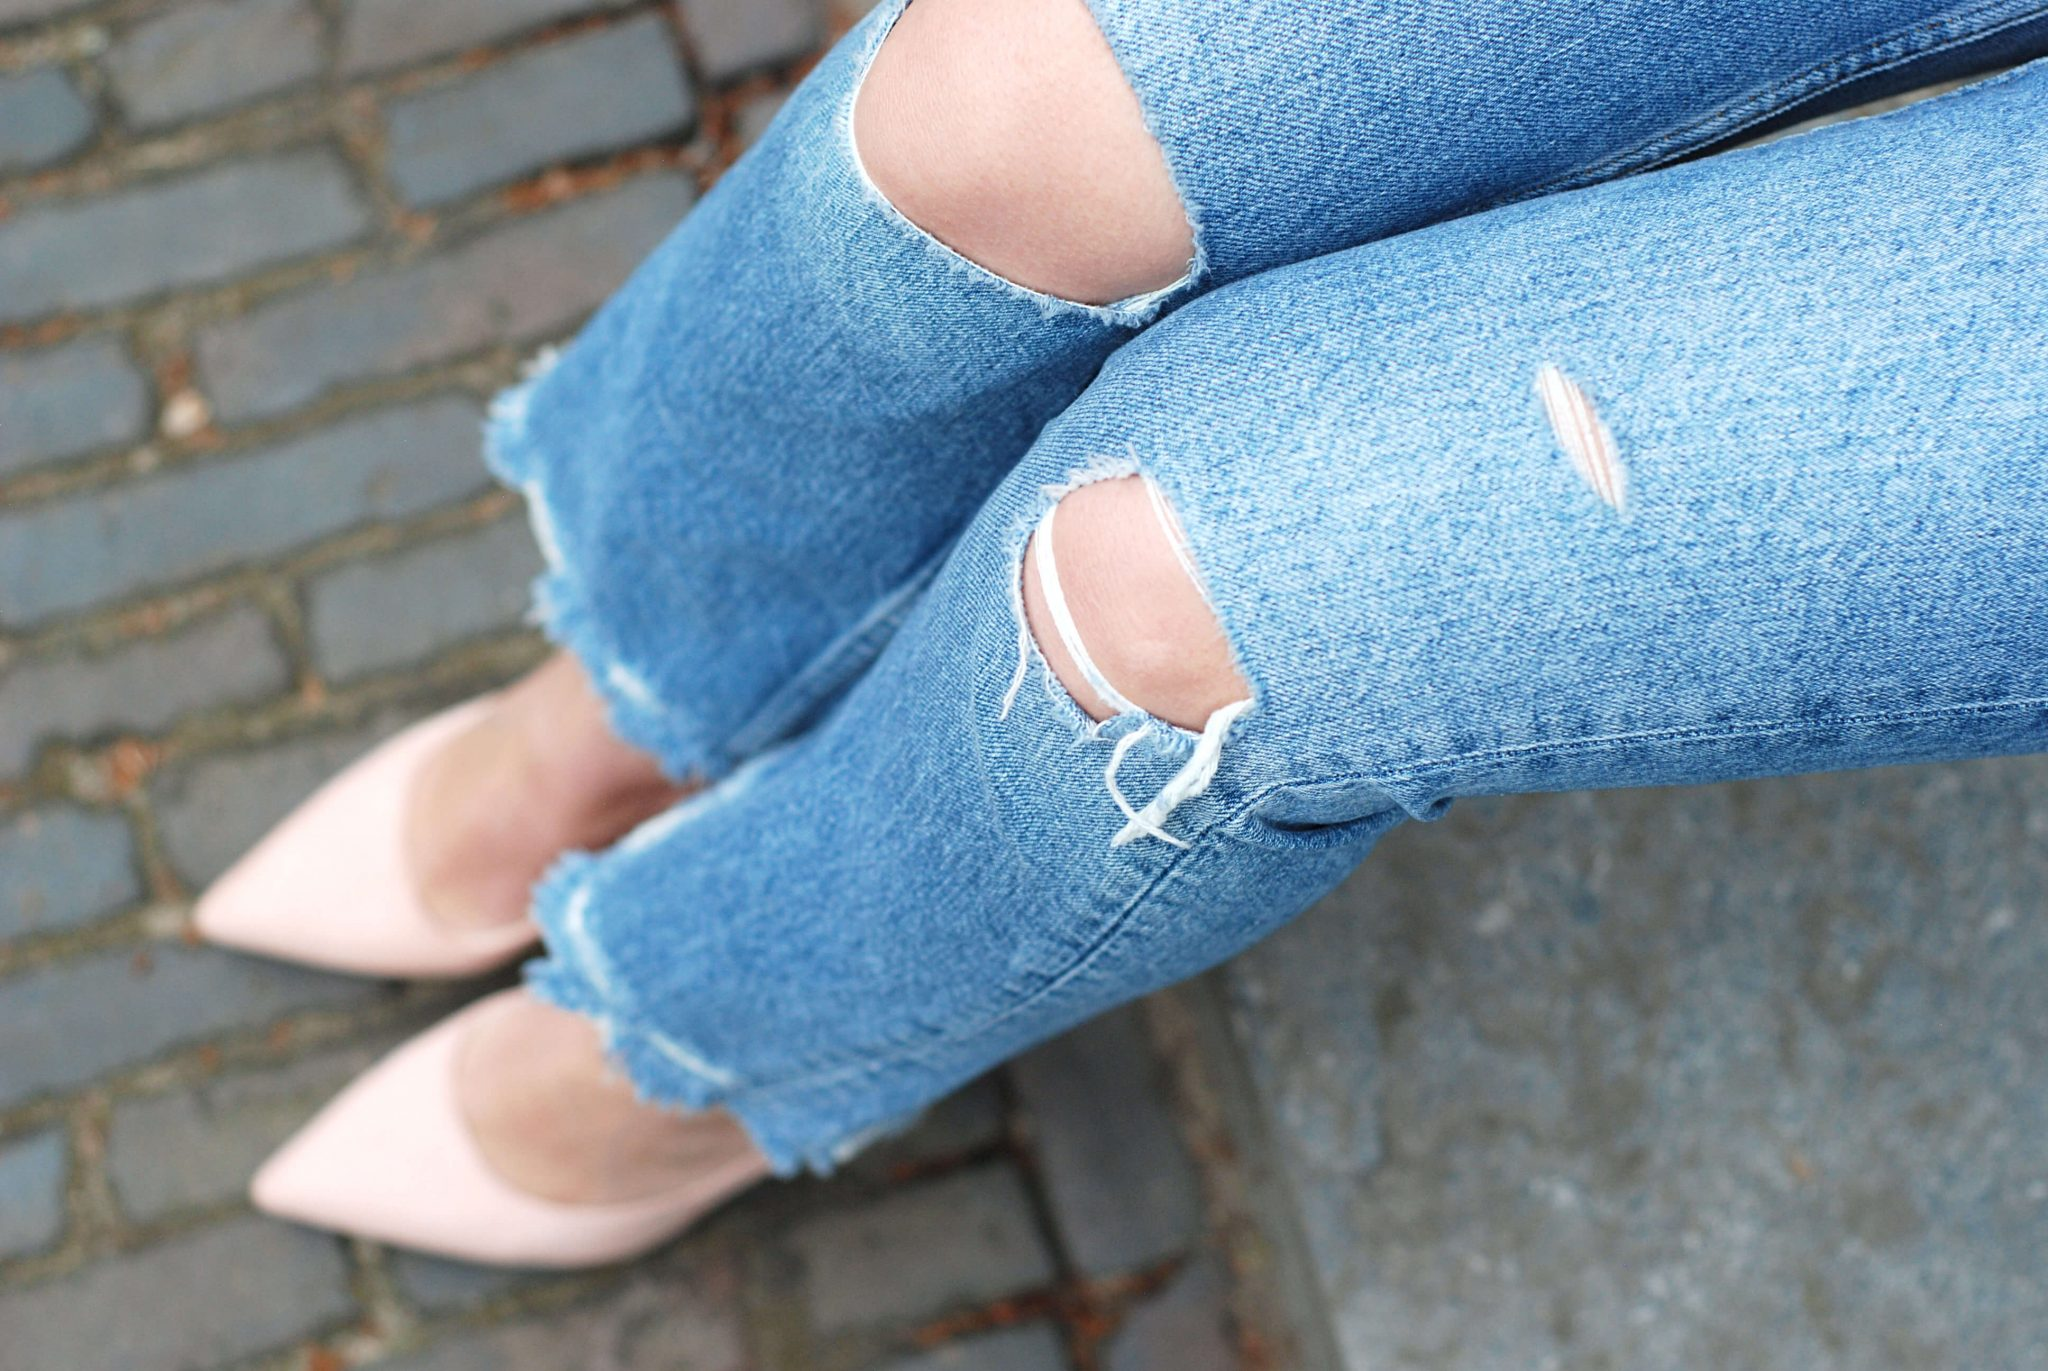 heels-and-ripped-jeans